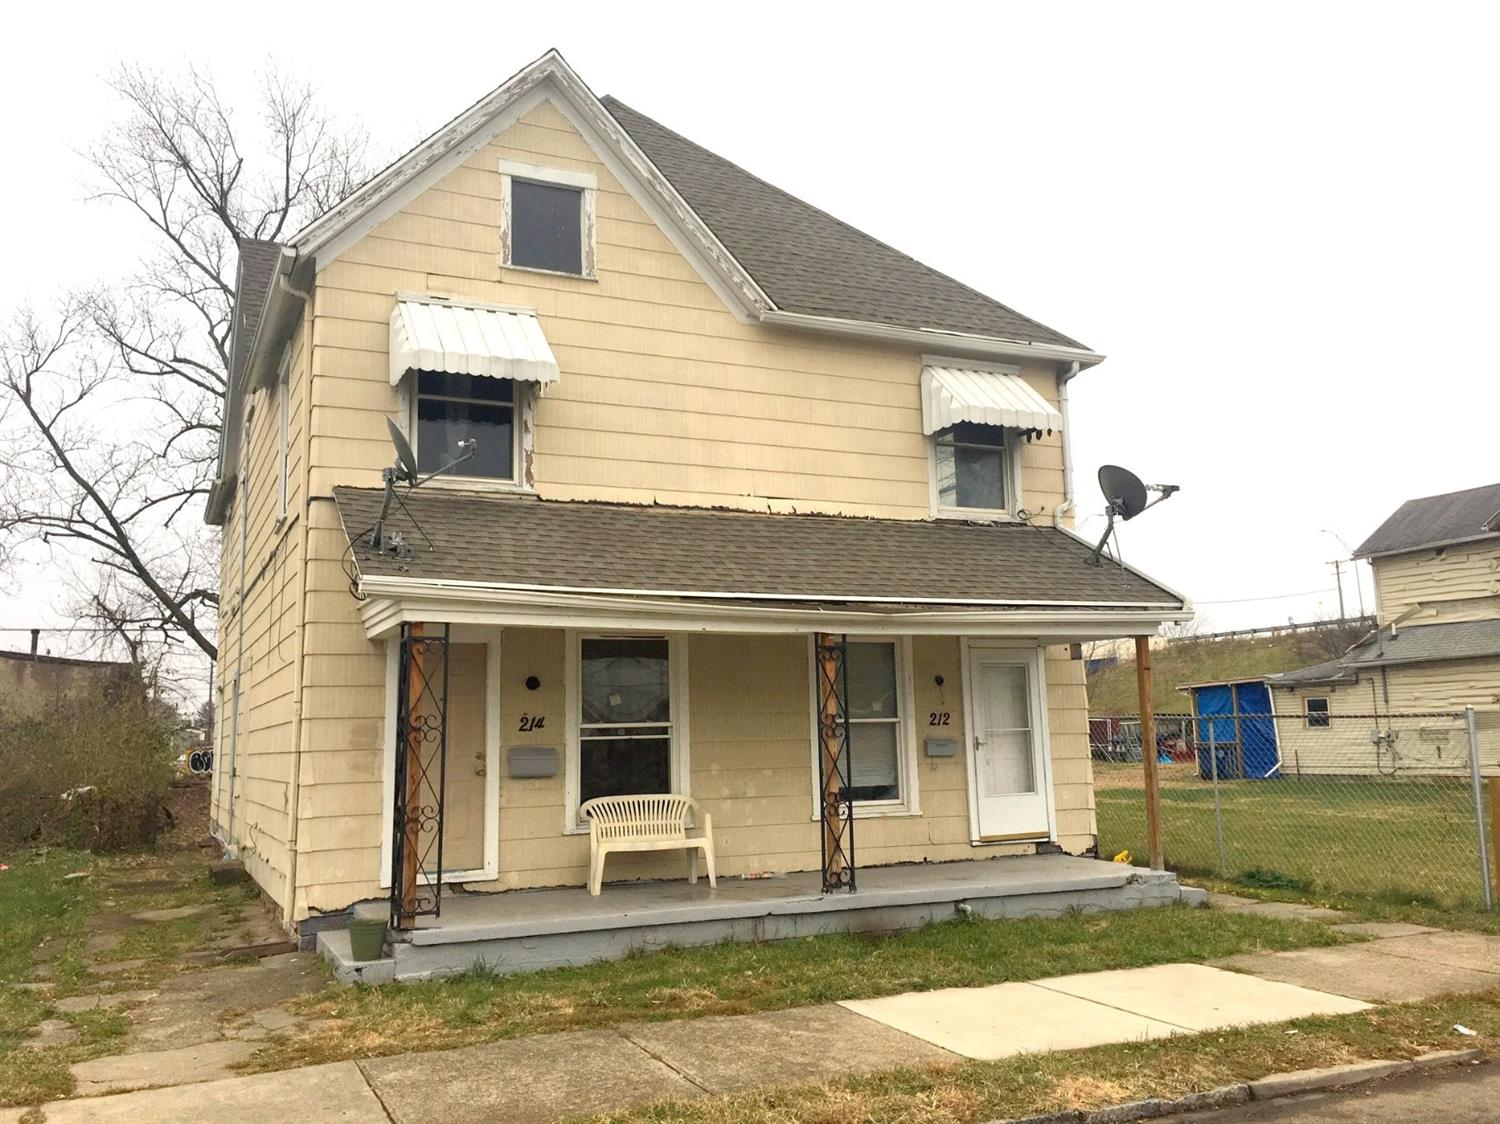 212 214 Maryland Ave Montgomery Co., OH